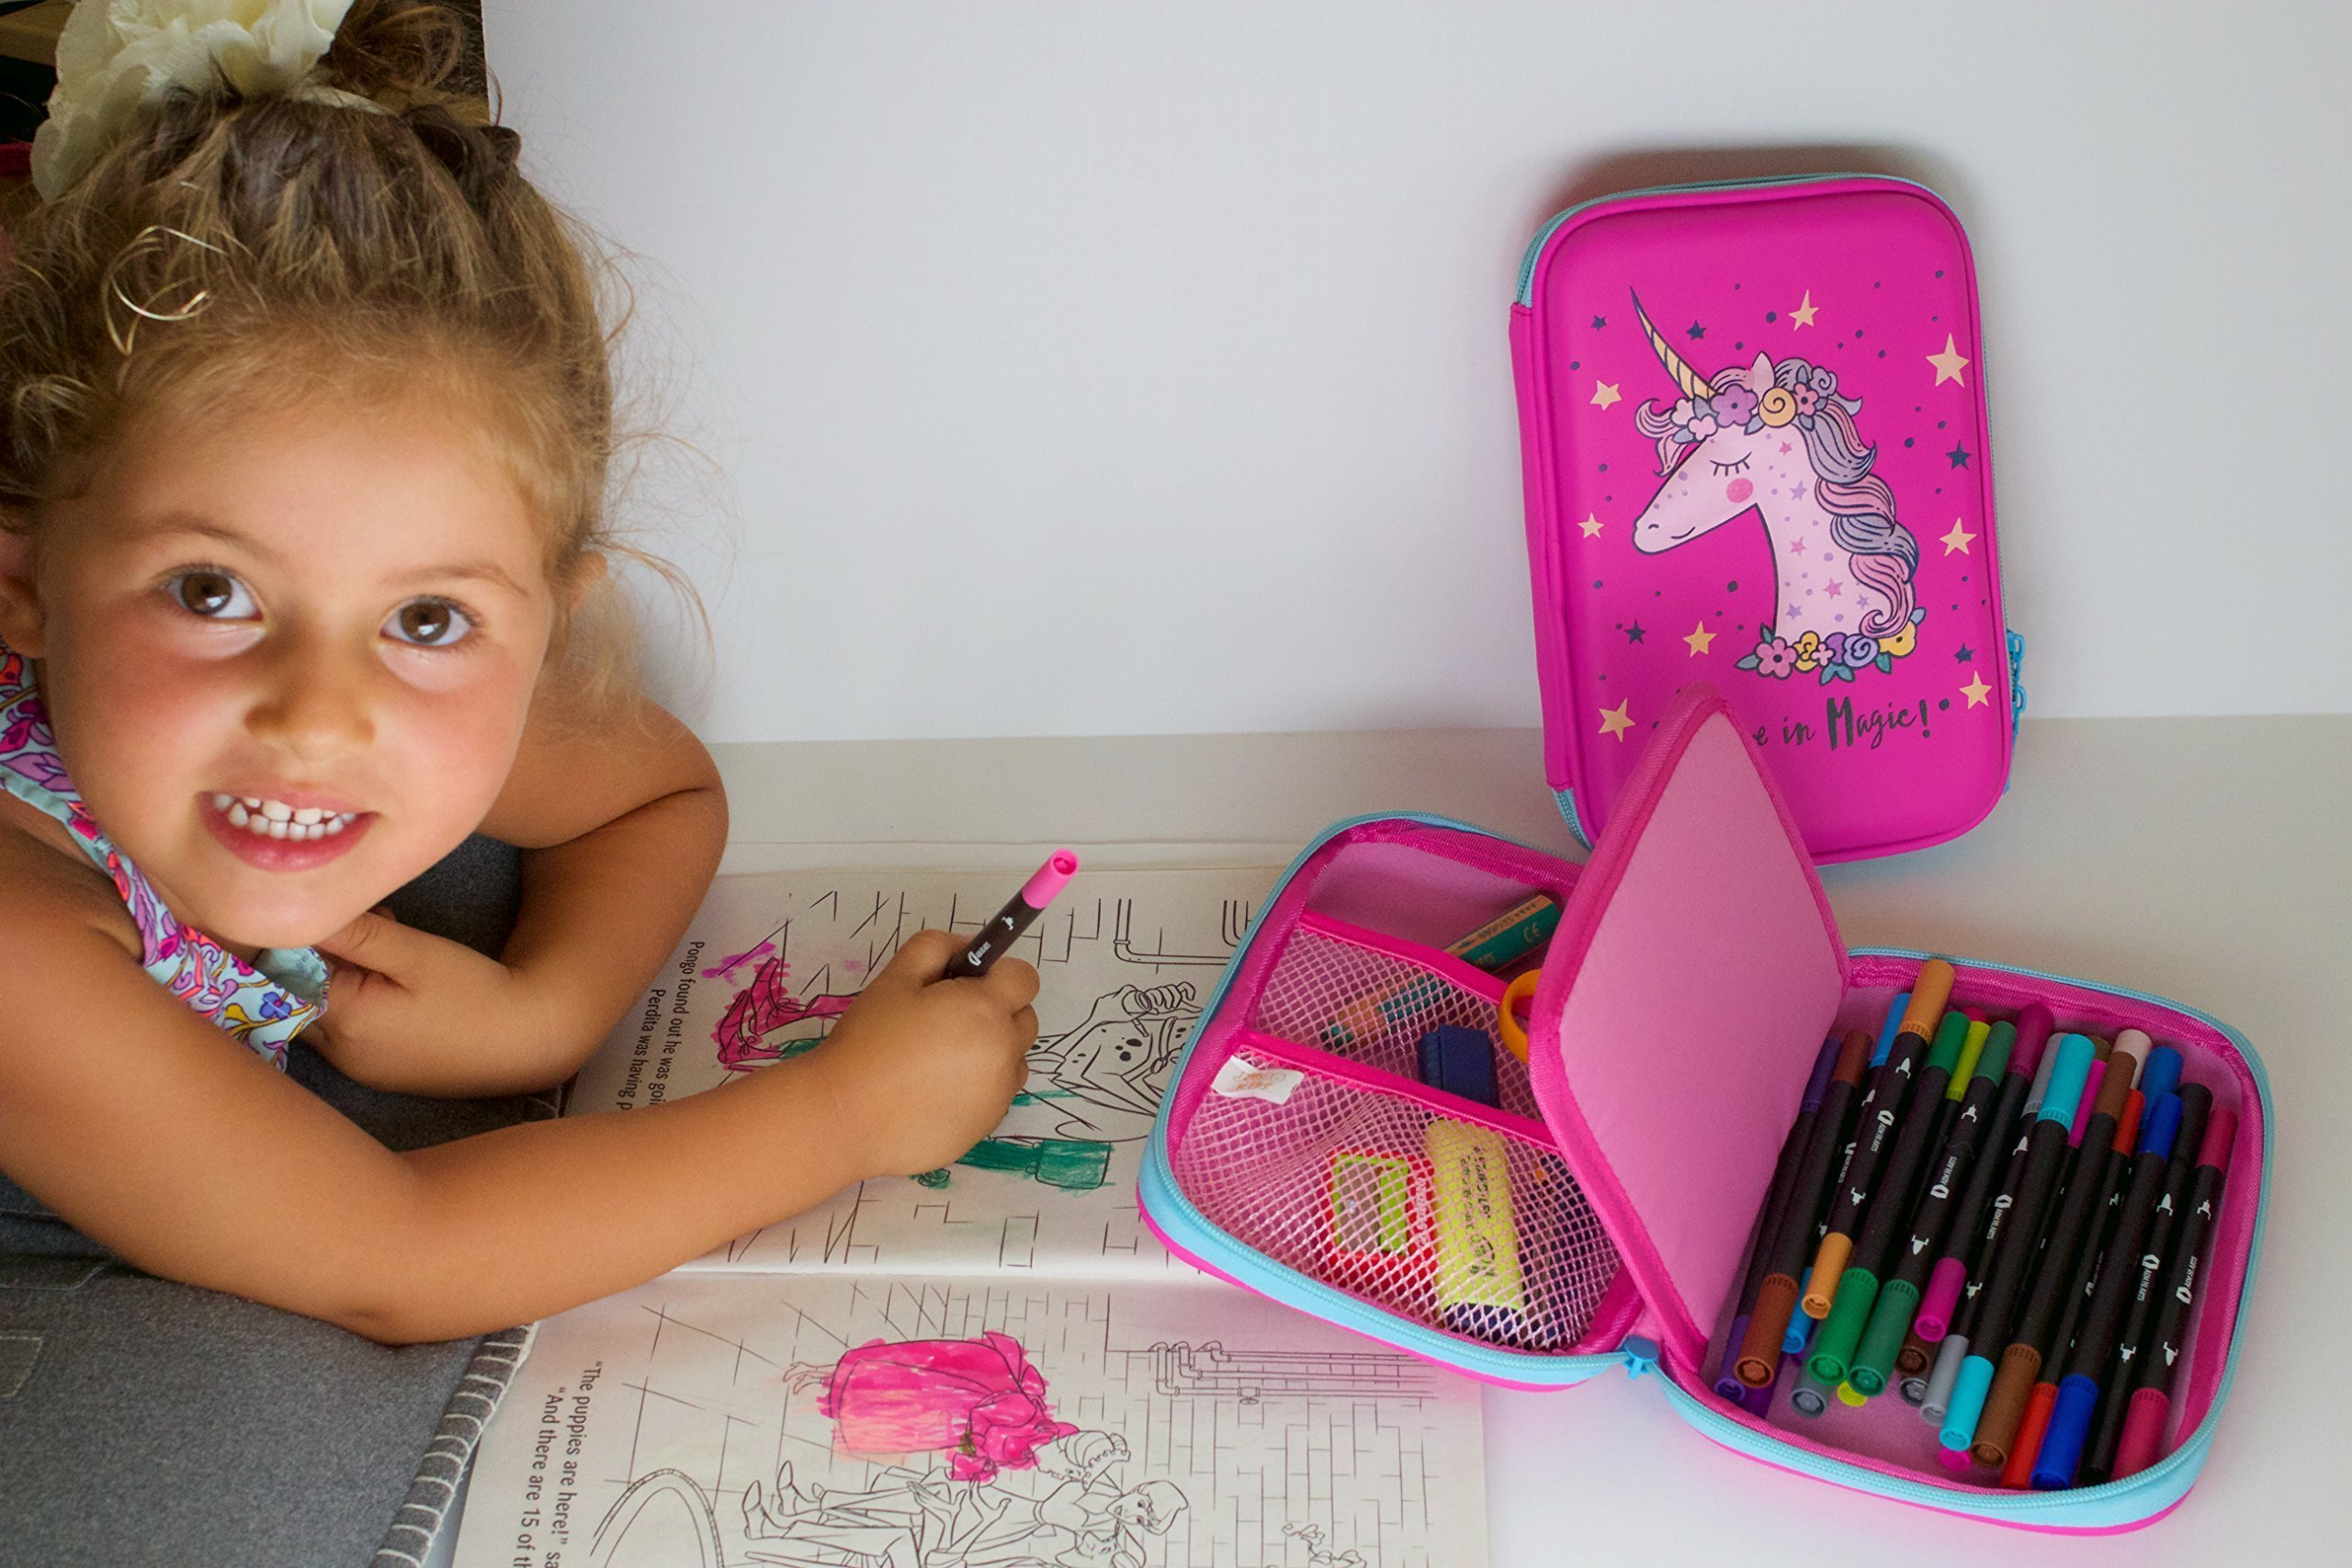 Unicorn Pencil Case by JoJo Kids Cute Pencils Holder | Large Size Crayon Box with Compartments for Girls Keep Kids School Supply Well Organized by Jojo Kids (Image #1)